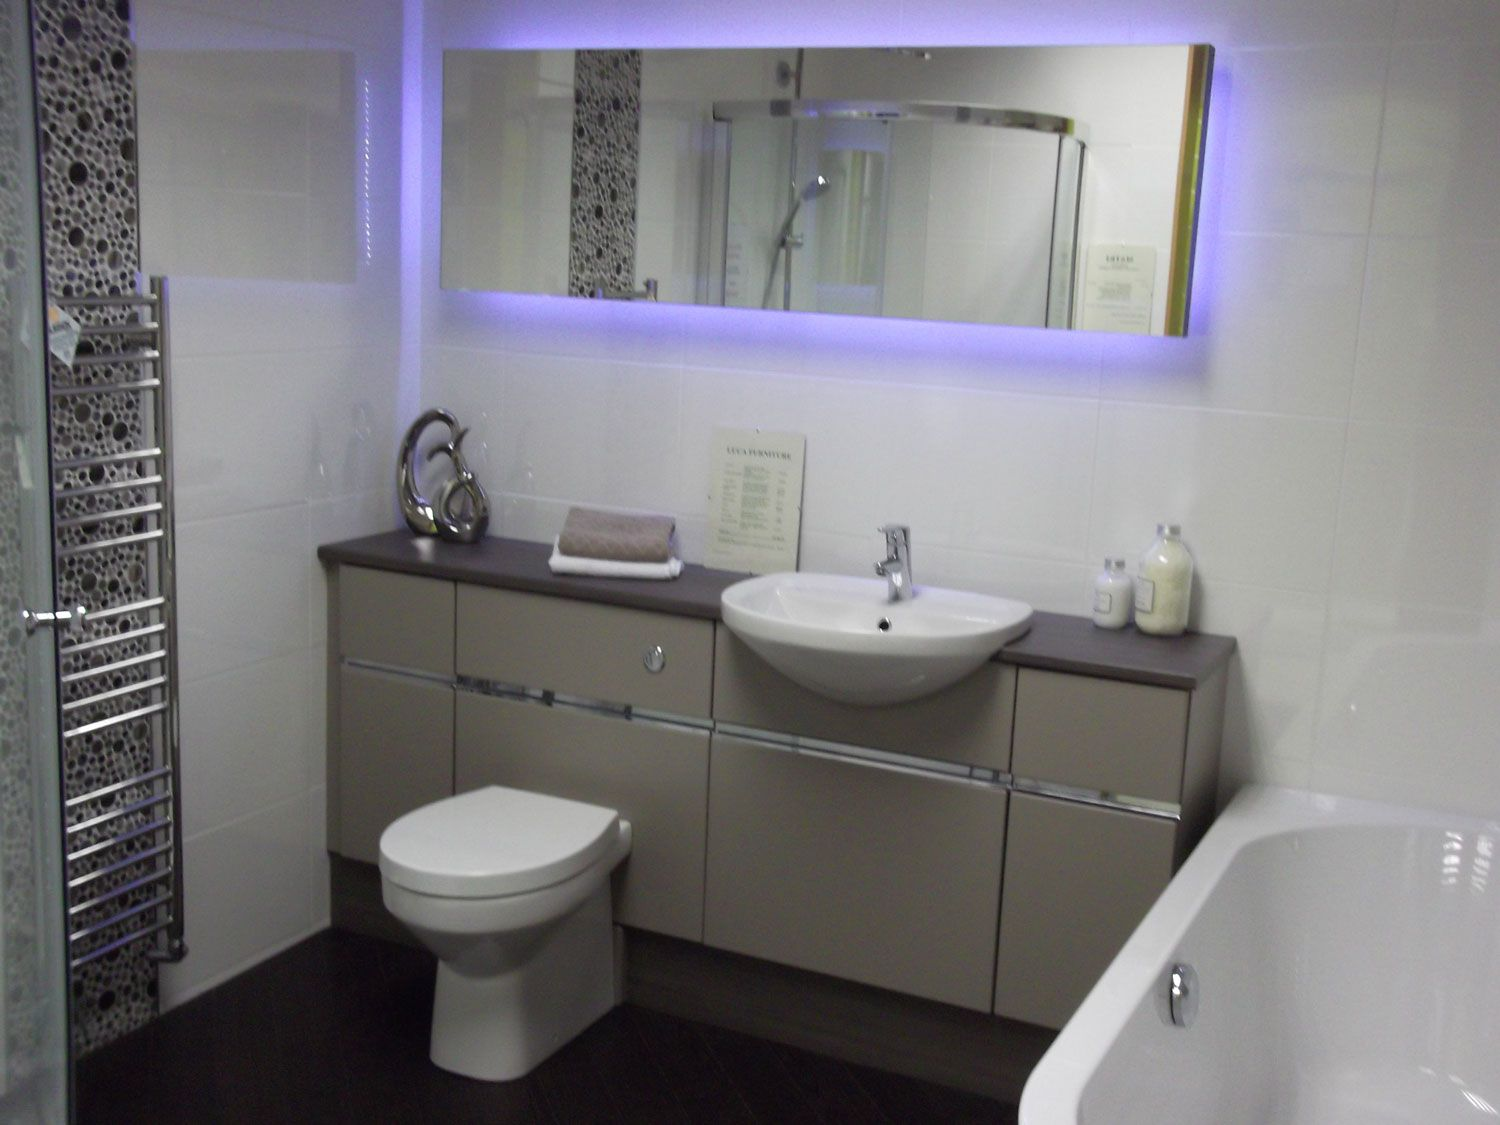 Exceptionnel White Futuristic Fitted Bathroom Furniture With Wall Mounted .